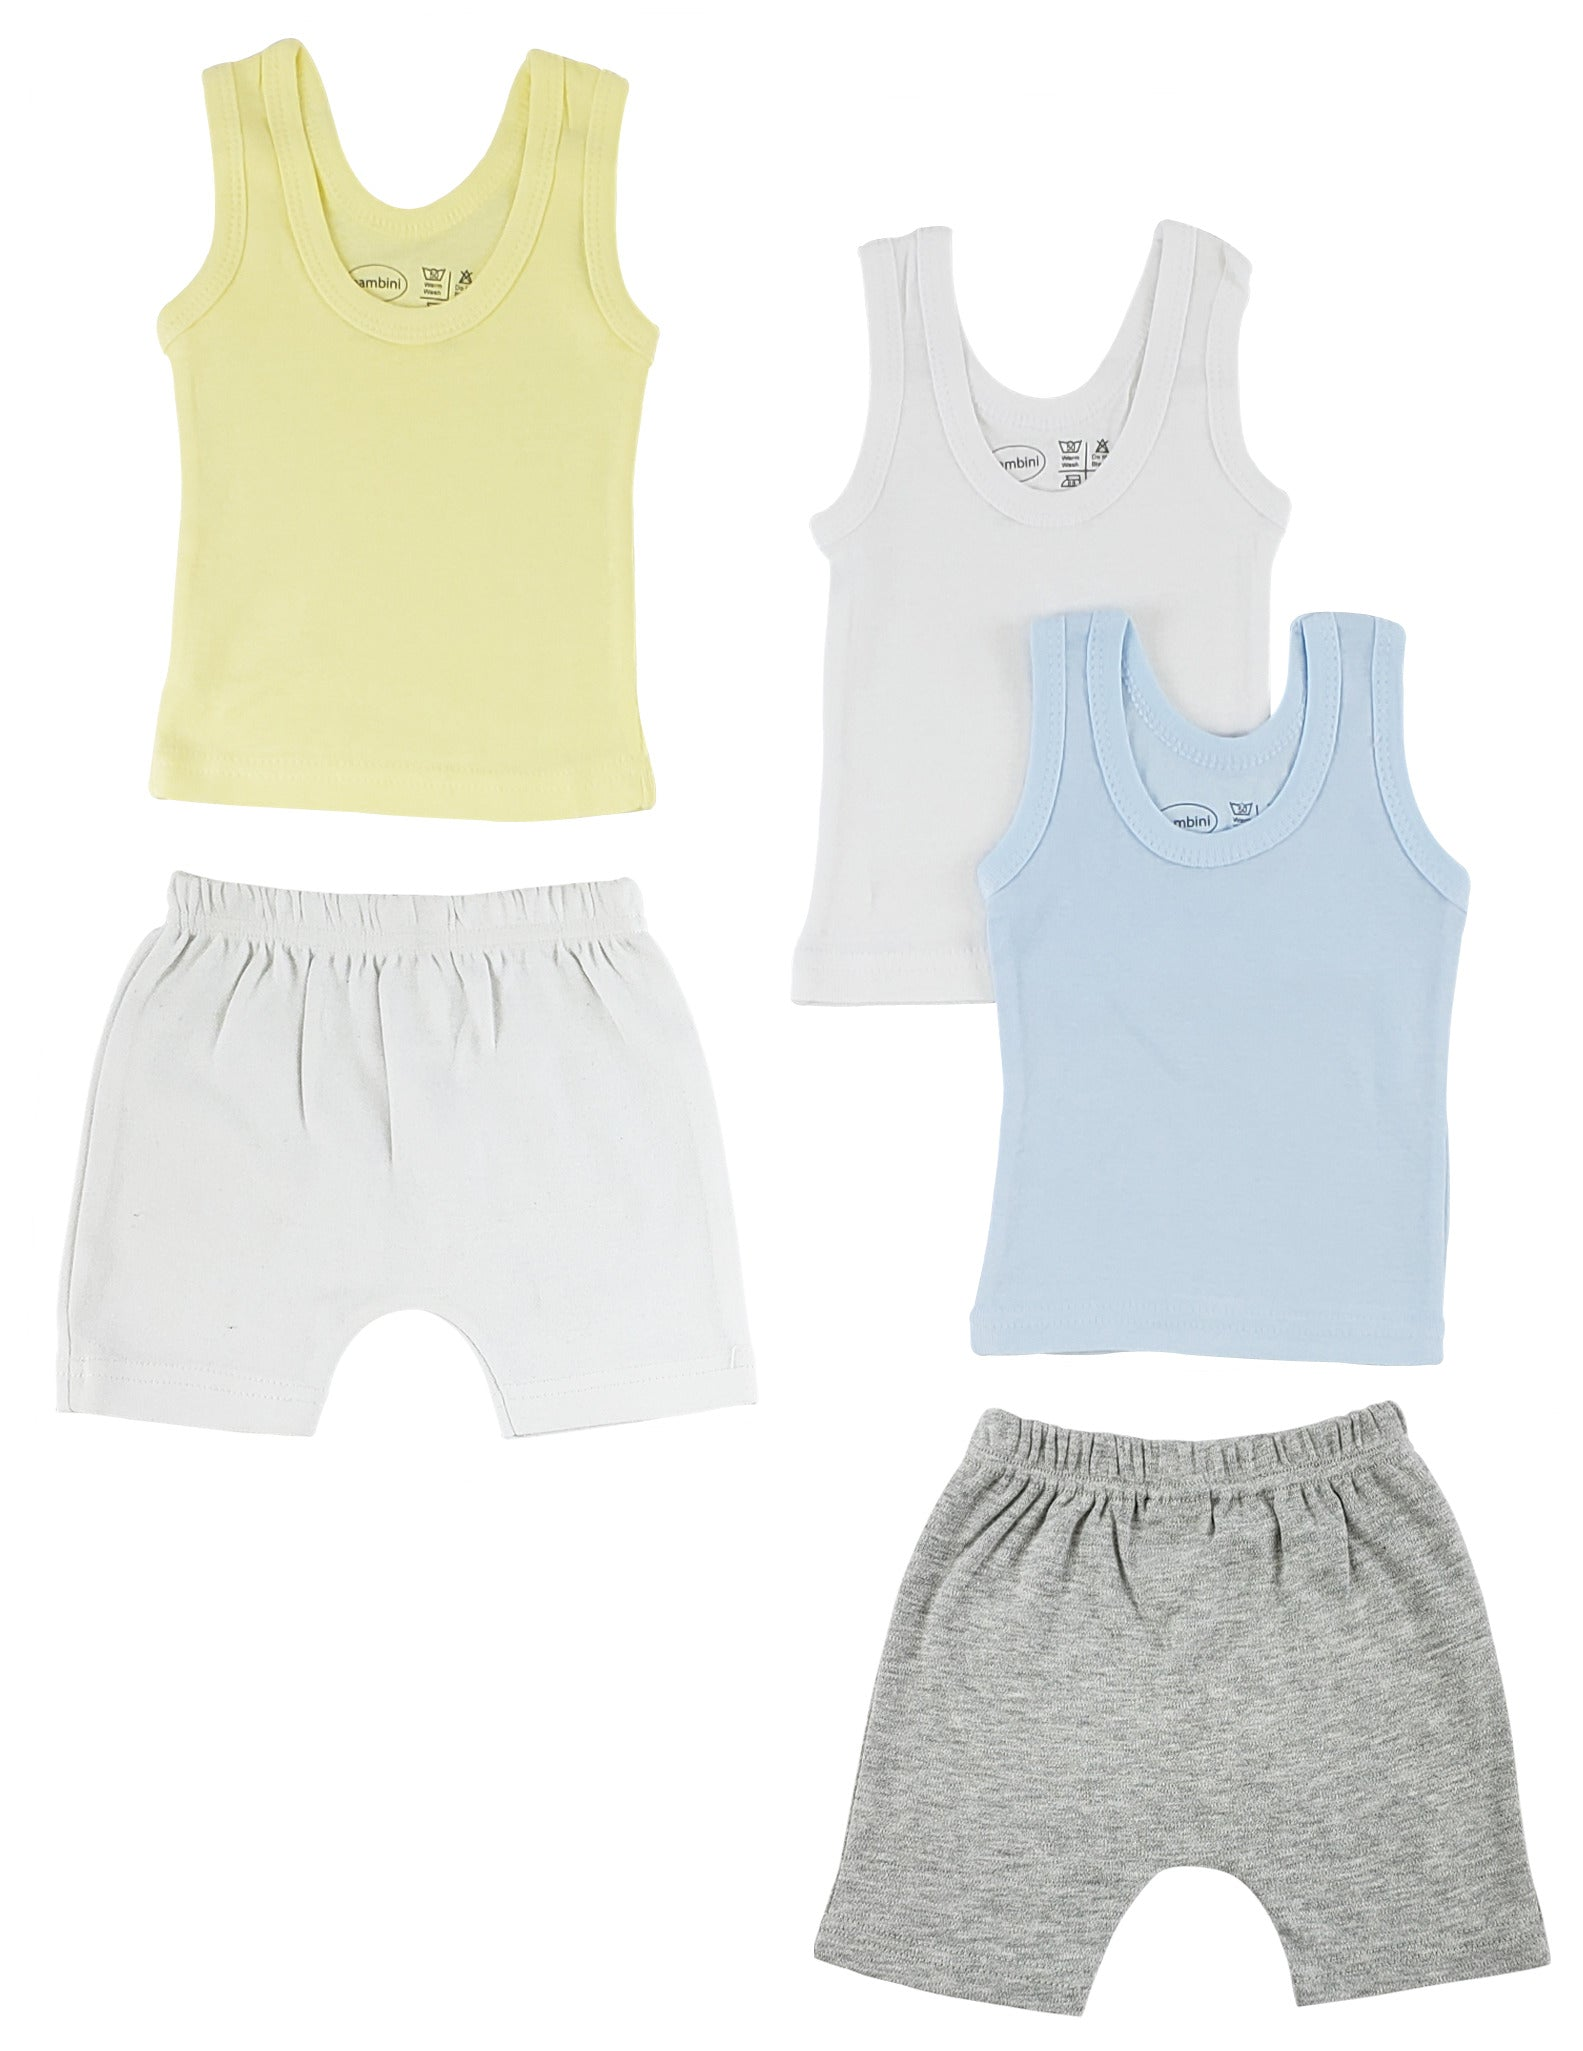 Boys Tank Tops and Shorts